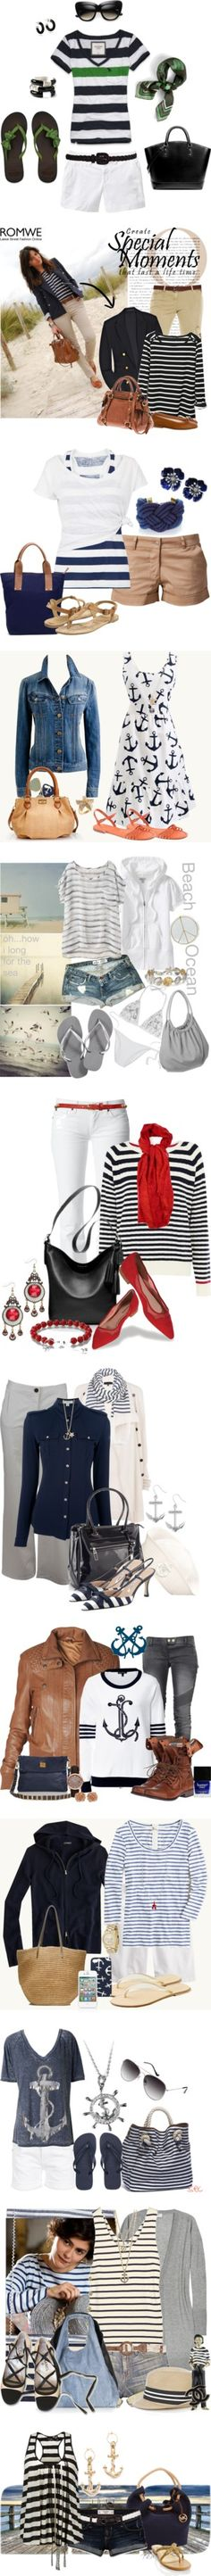 """My Favourite Nautical Sets"" by inmango ❤ liked on Polyvore"